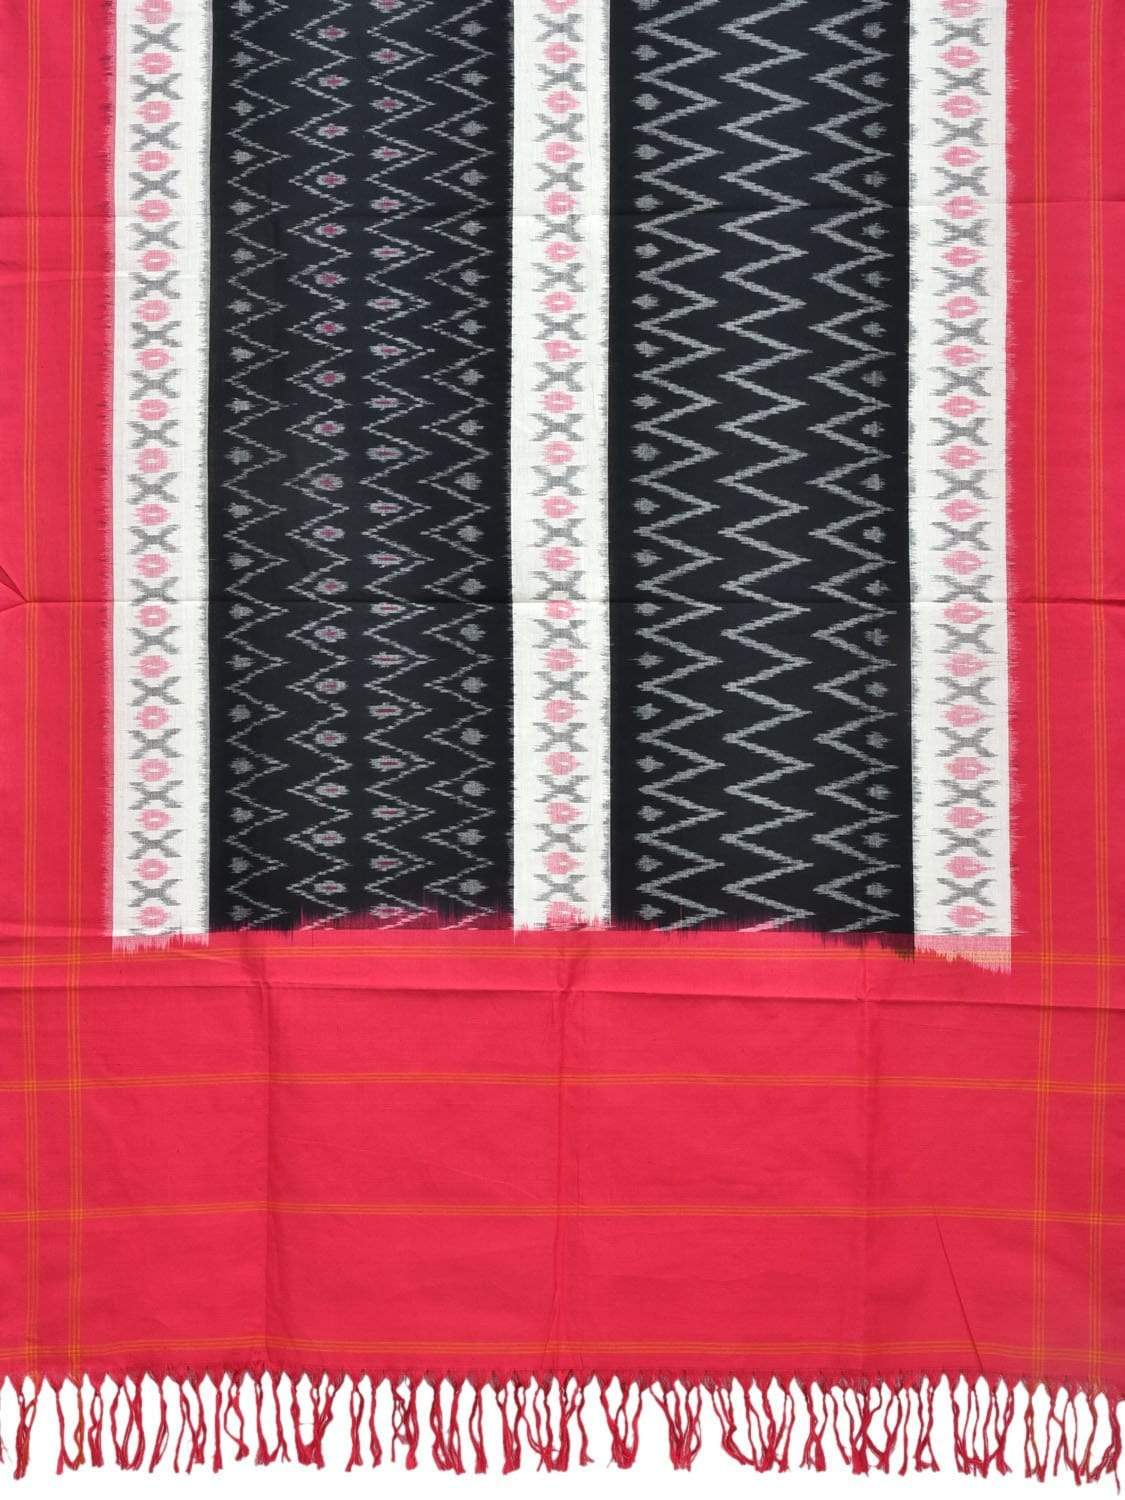 Pink and Black Pochampally Ikat Cotton Handloom Dupatta with Zig-Zag Design ds1837